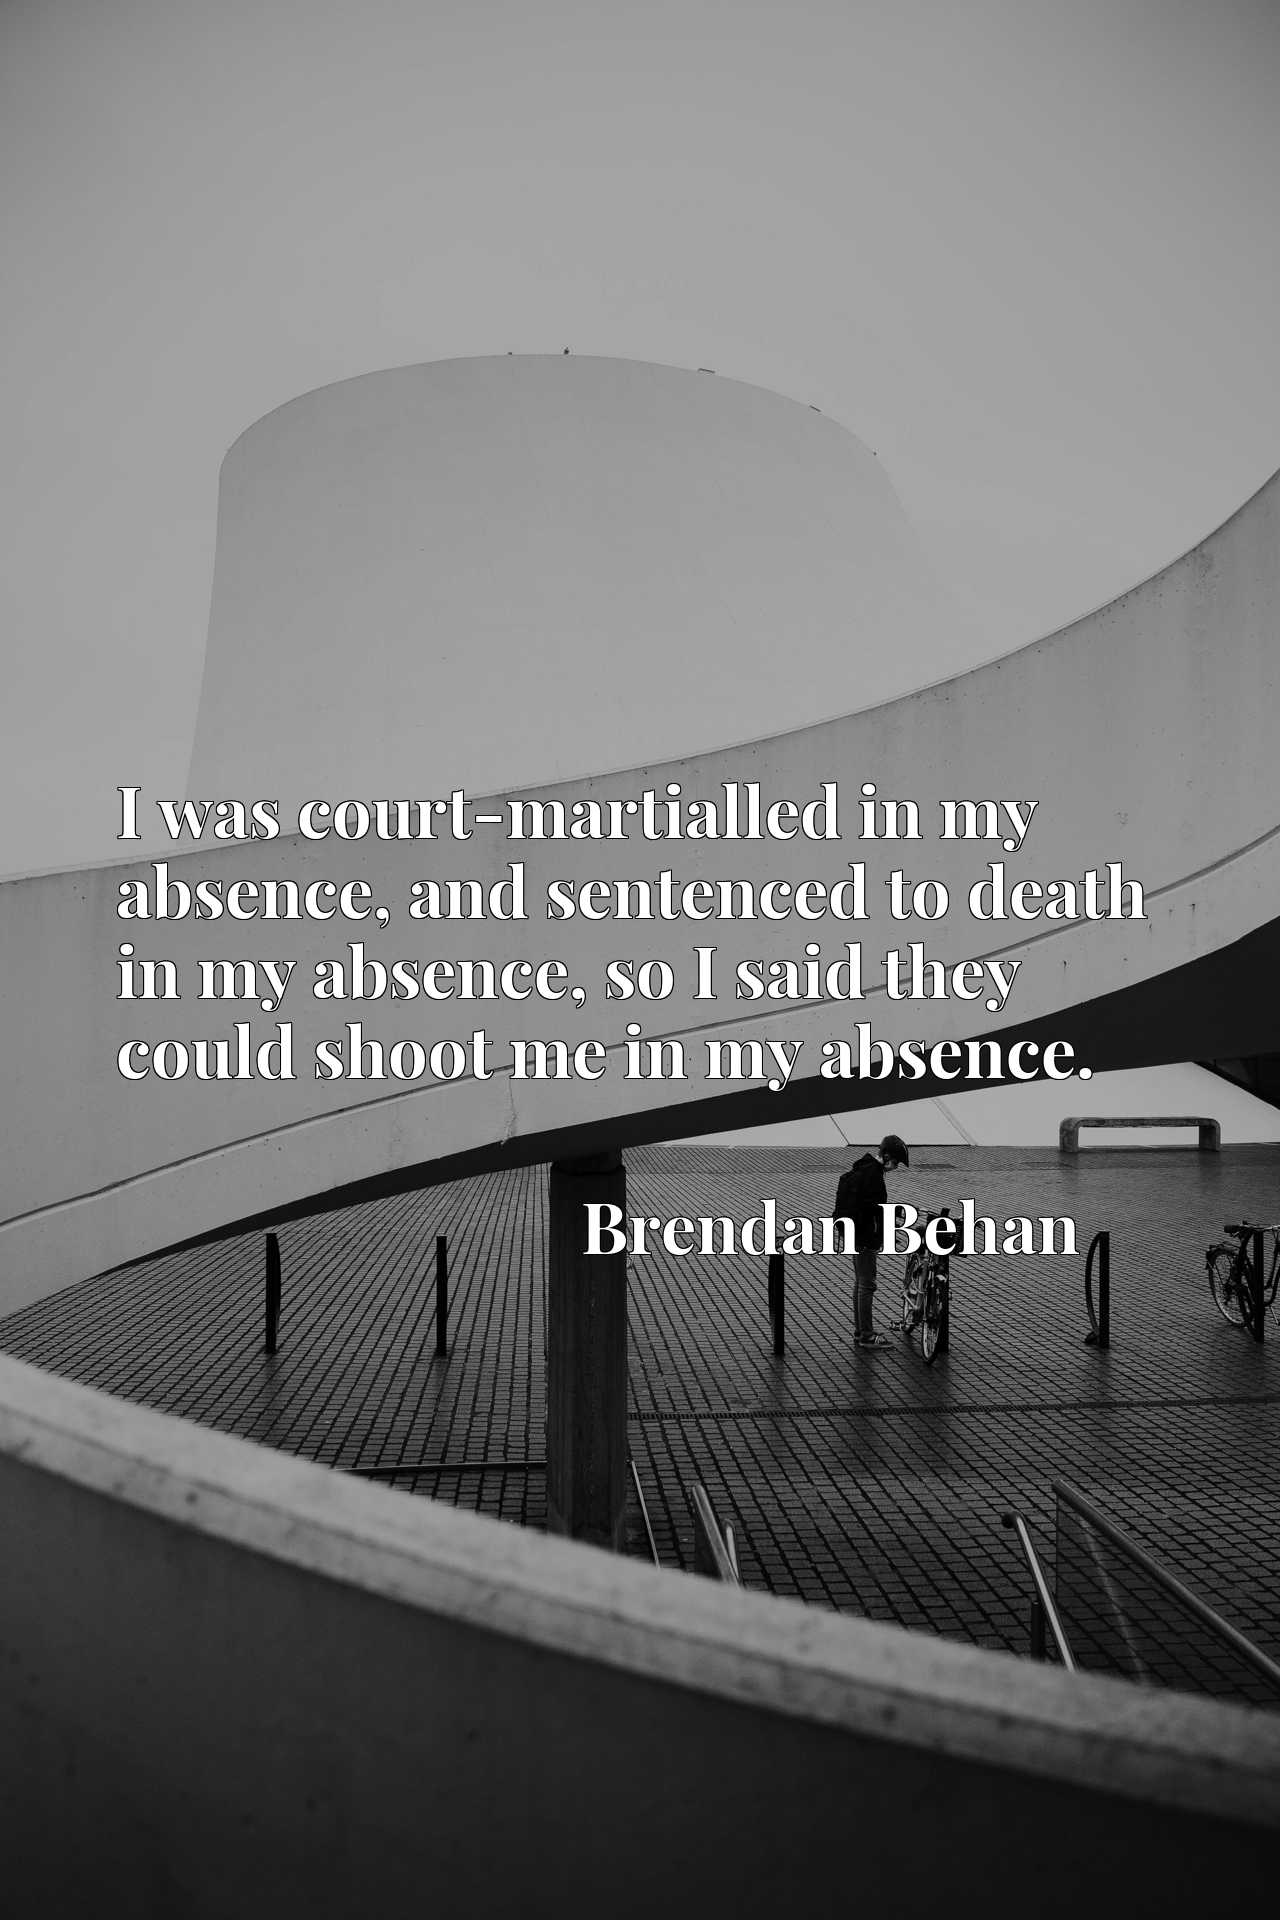 I was court-martialled in my absence, and sentenced to death in my absence, so I said they could shoot me in my absence.